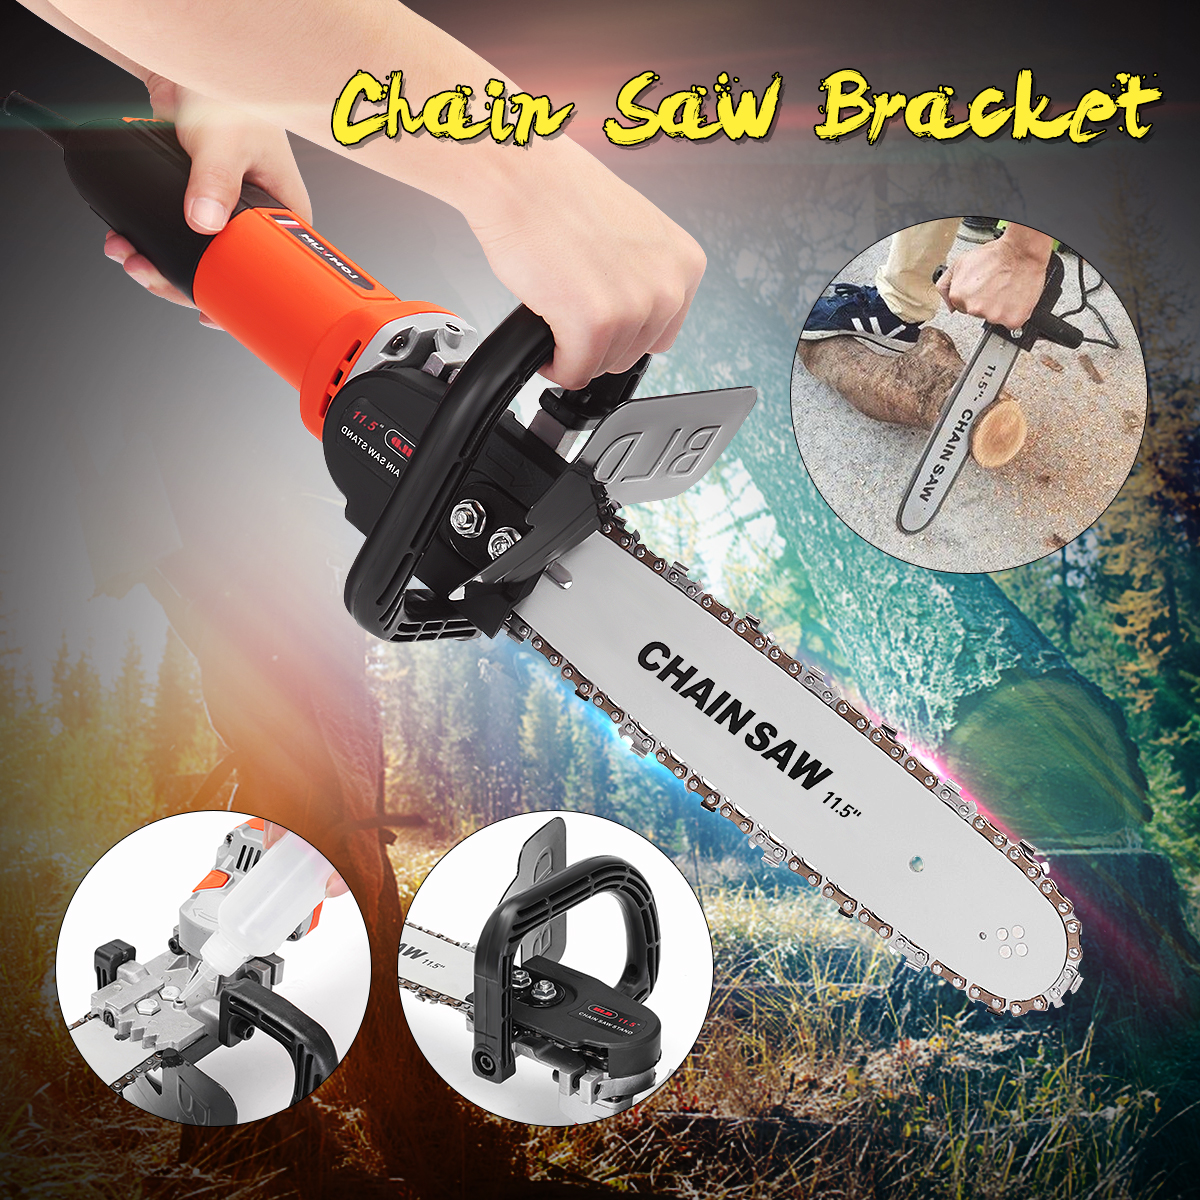 Drillpro DIY High Carbon Steel 11.5 Inch Chainsaw Bracket Electric Saws Changed Angle Grinder Into Chain Saw Woodworking Tool electric saws 11 5 inch chainsaw bracket set high carbon steel for electric angle grinder to chain saw woodworking power tools